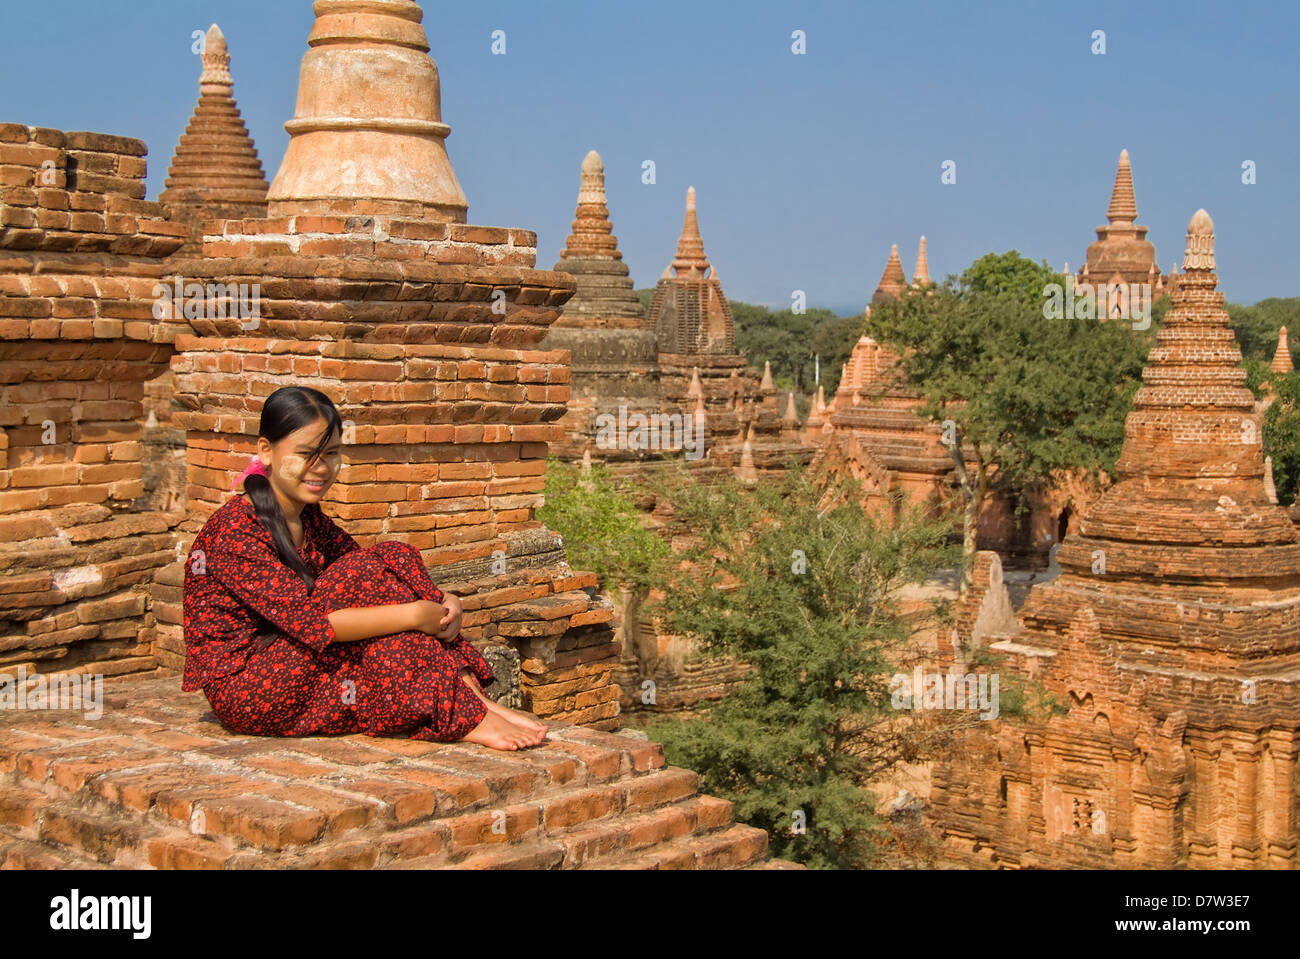 Young Burmese woman in a red dress sitting on the roof of a temple, Bagan (Pagan), Burma Stock Photo